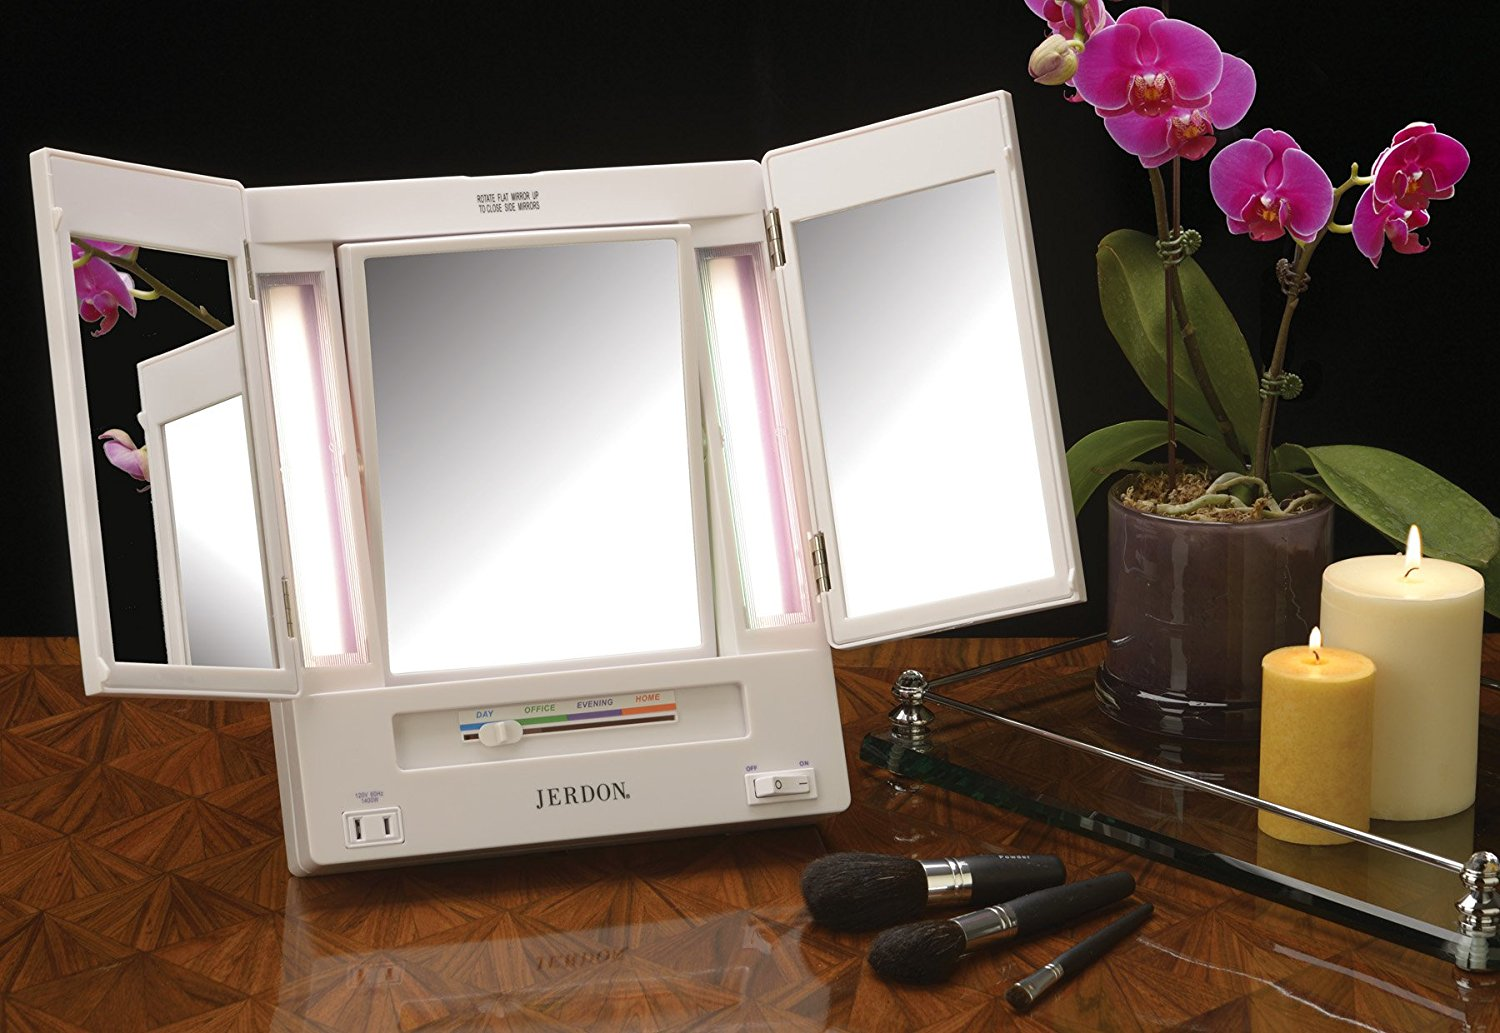 Jerdon tabletop tri fold 2 sided lighted makeup mirror with 5x jerdon tabletop tri fold 2 sided lighted makeup mirror with 5x magnification and 4 light settings white walmart aloadofball Image collections